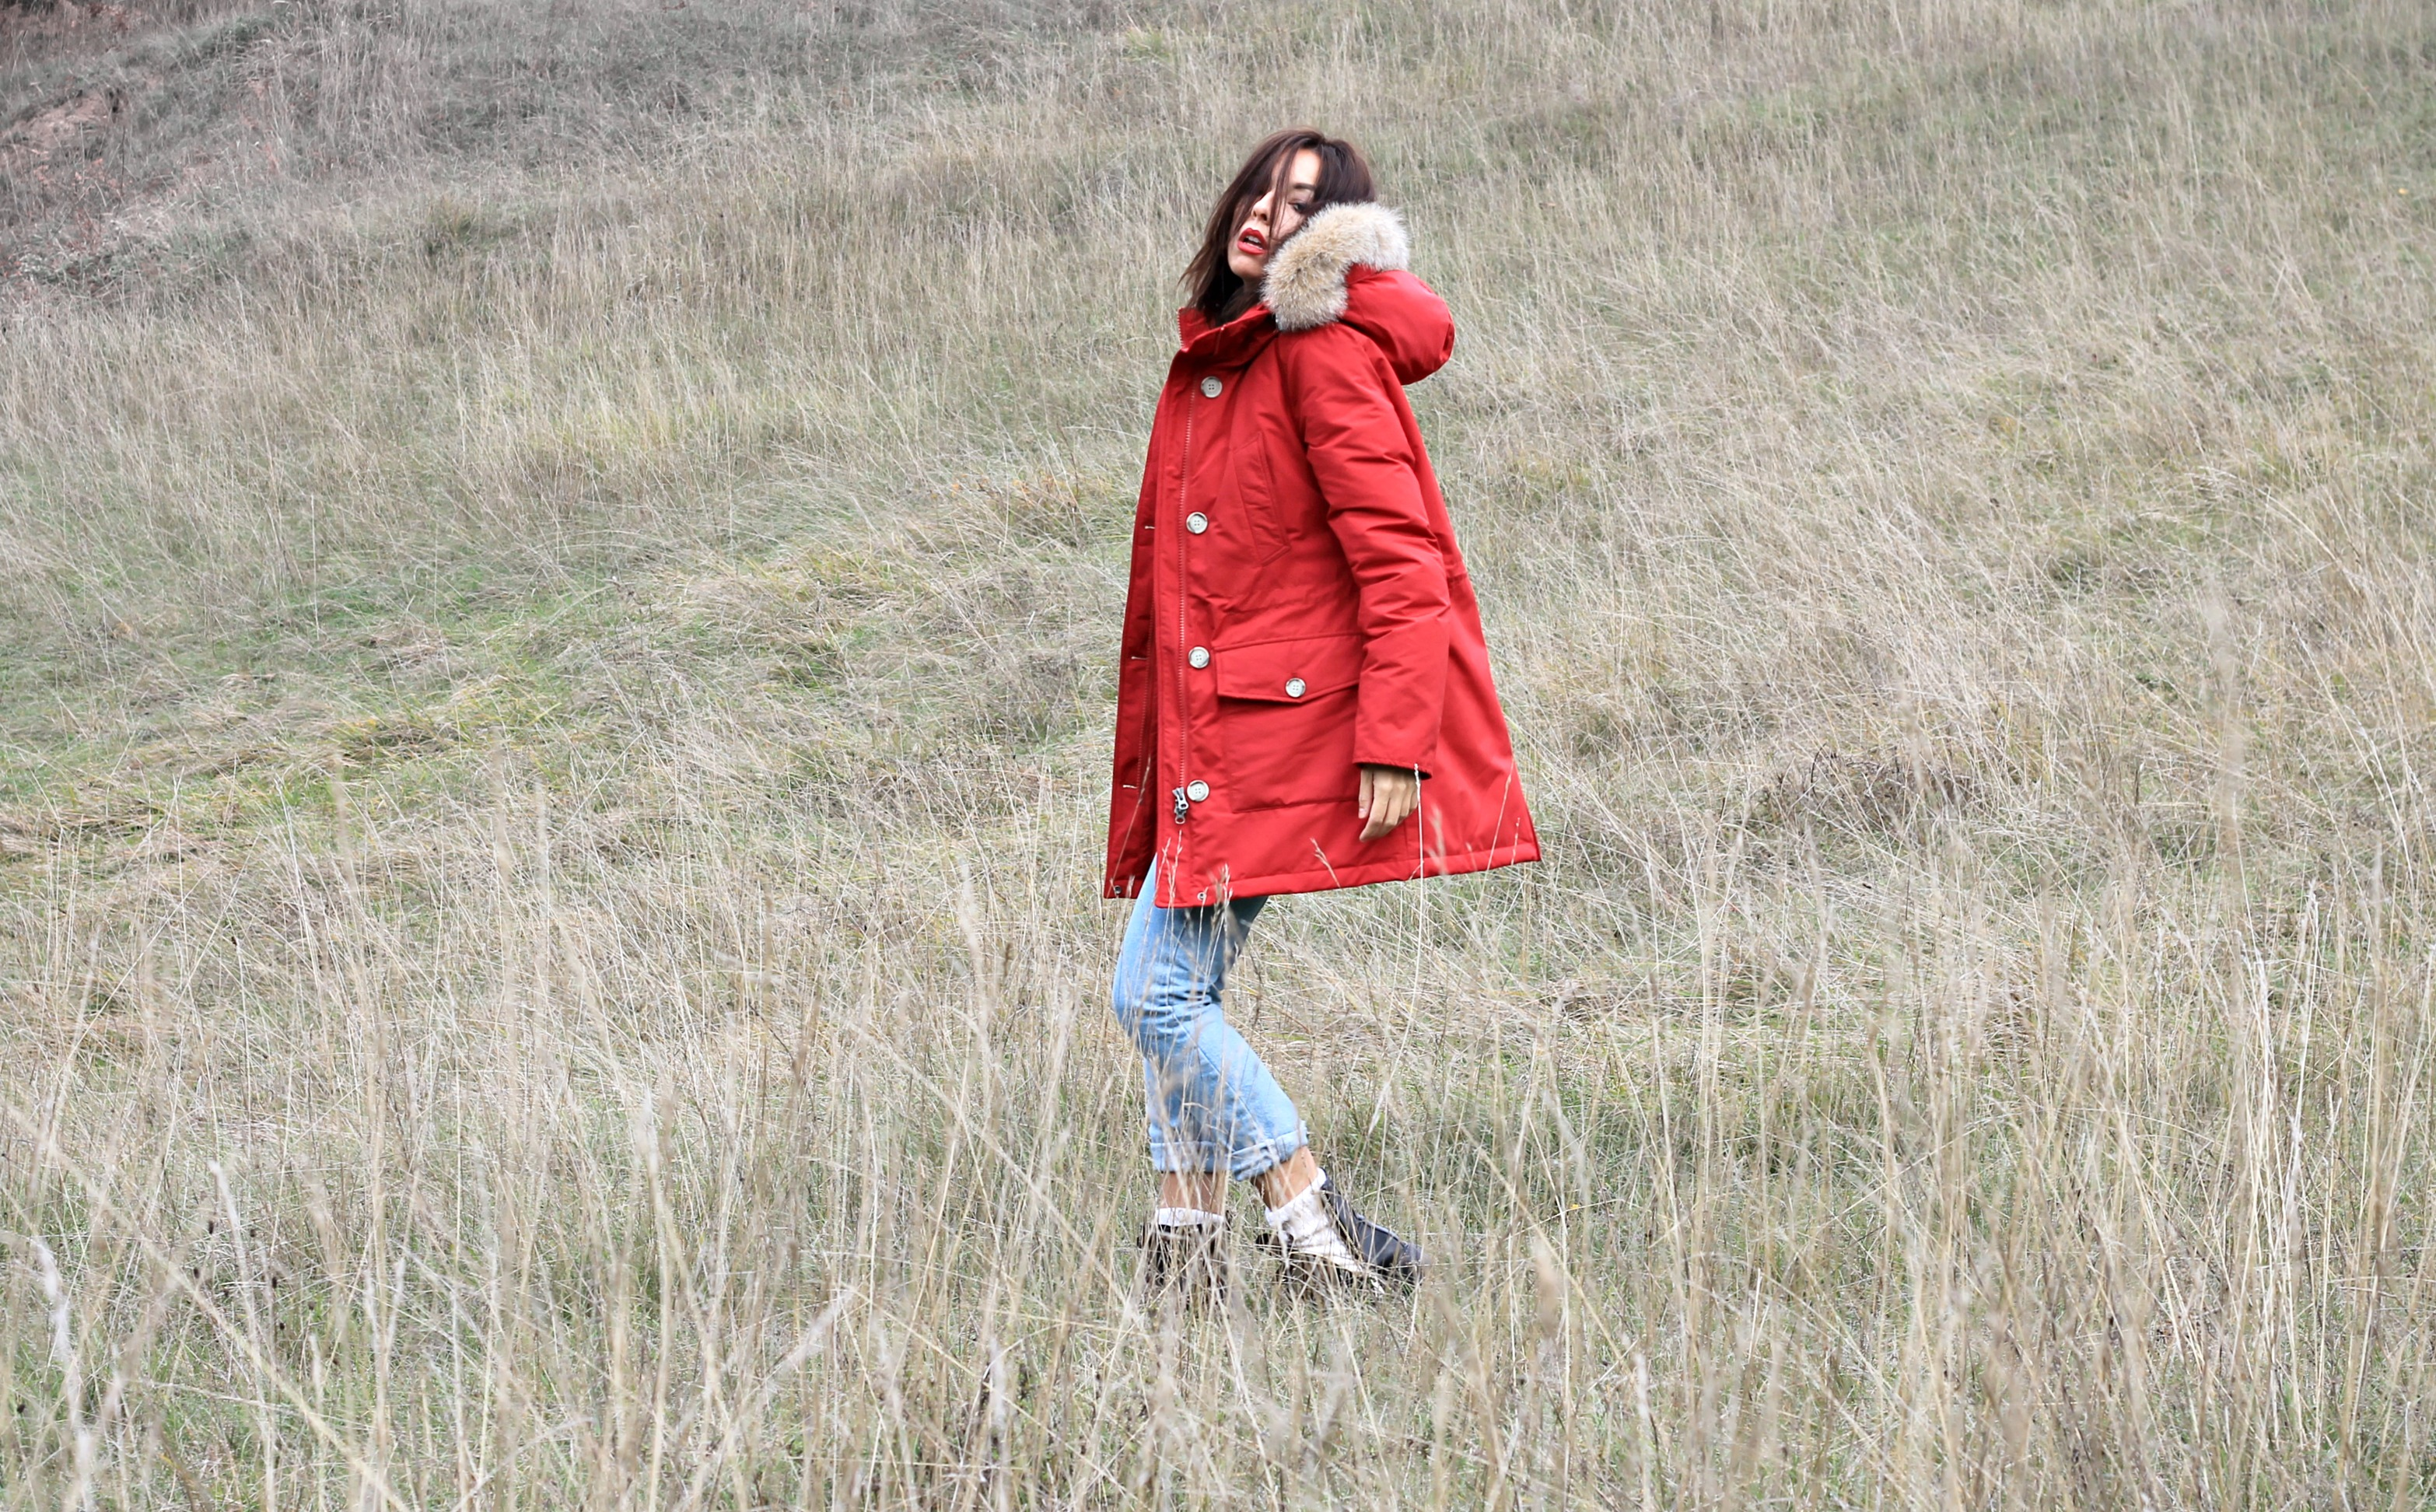 Woolrich Parka, Woolrich Parka 2016, Woolrich Parka blogger 2016, Woolrich Parka rosso inverno 2016, Woolrich Parka come si indossa, Woolrich Parka outfit 2016, sporty chic outfit inverno 2016, casual chic look inverno 2016, Woolrich Parka red winter 2016, elisa bellino, theladycracy.it, fashion blog italia 2016, fashion blogger italiane famose 2016, fashion blogger 2016, fashion blogger più influenti 2016, inverno outfit blogger 2016, come vestirsi quando fa freddo, come vestirsi quando si gela 2016,